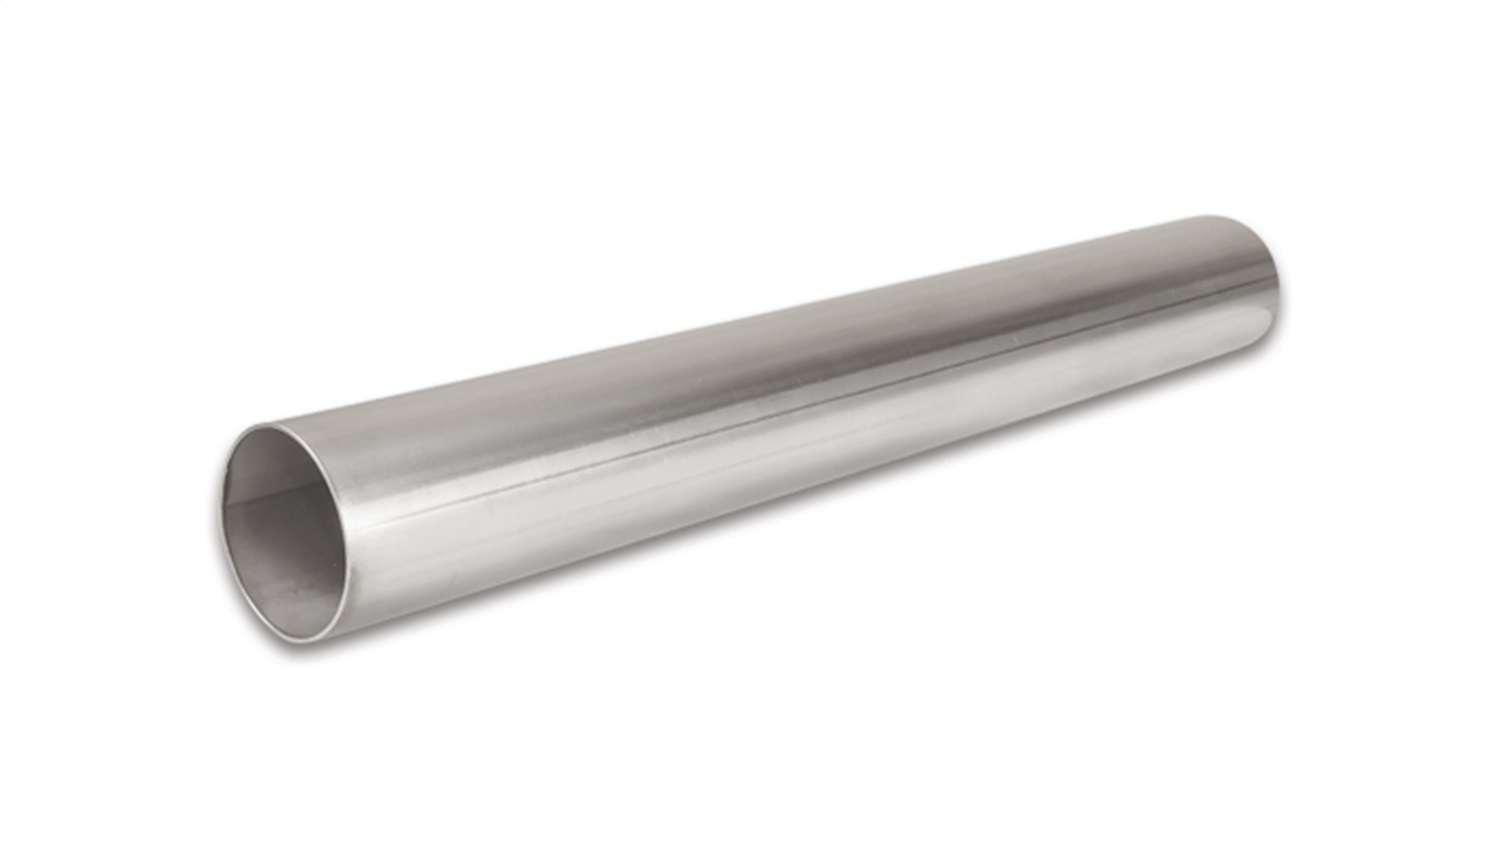 Vibrant Performance 2597 Stainless Tubing